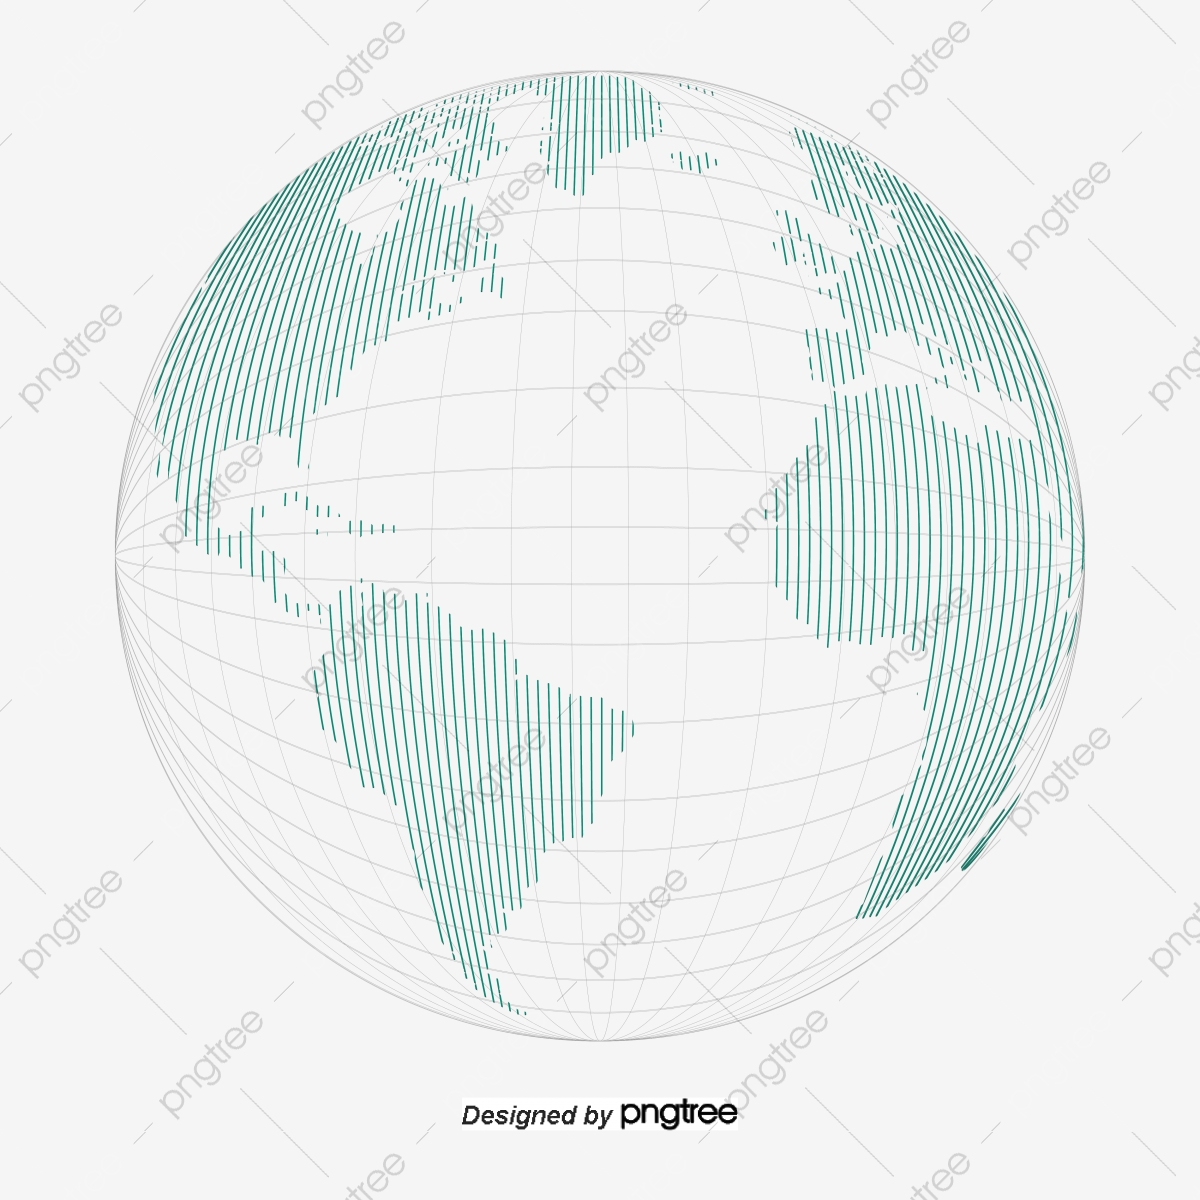 Creative Design Vector Earth, Earth Vector, Abstract